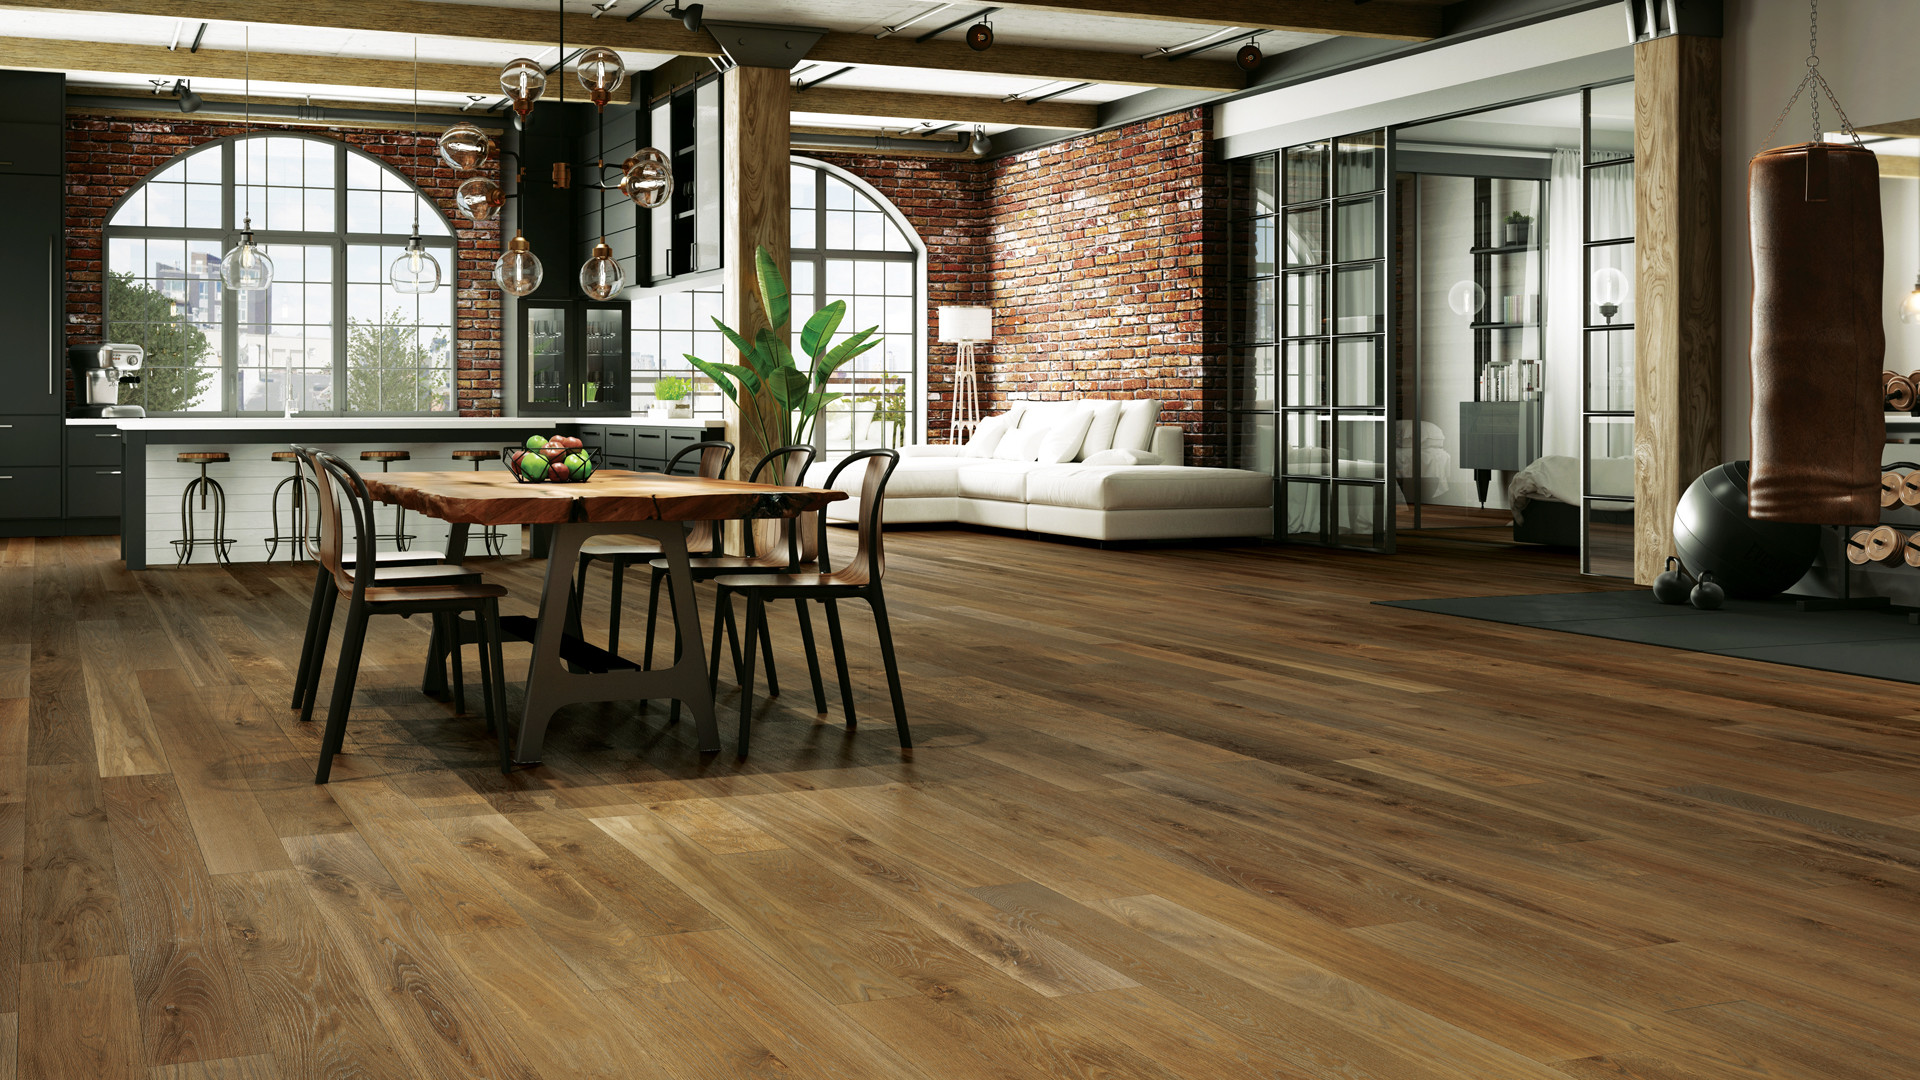 5 hand scraped hardwood flooring of 4 latest hardwood flooring trends of 2018 lauzon flooring within combined with a wire brushed texture and an ultra matte sheen these new 7a½ wide white oak hardwood floors will definitely add character to your home